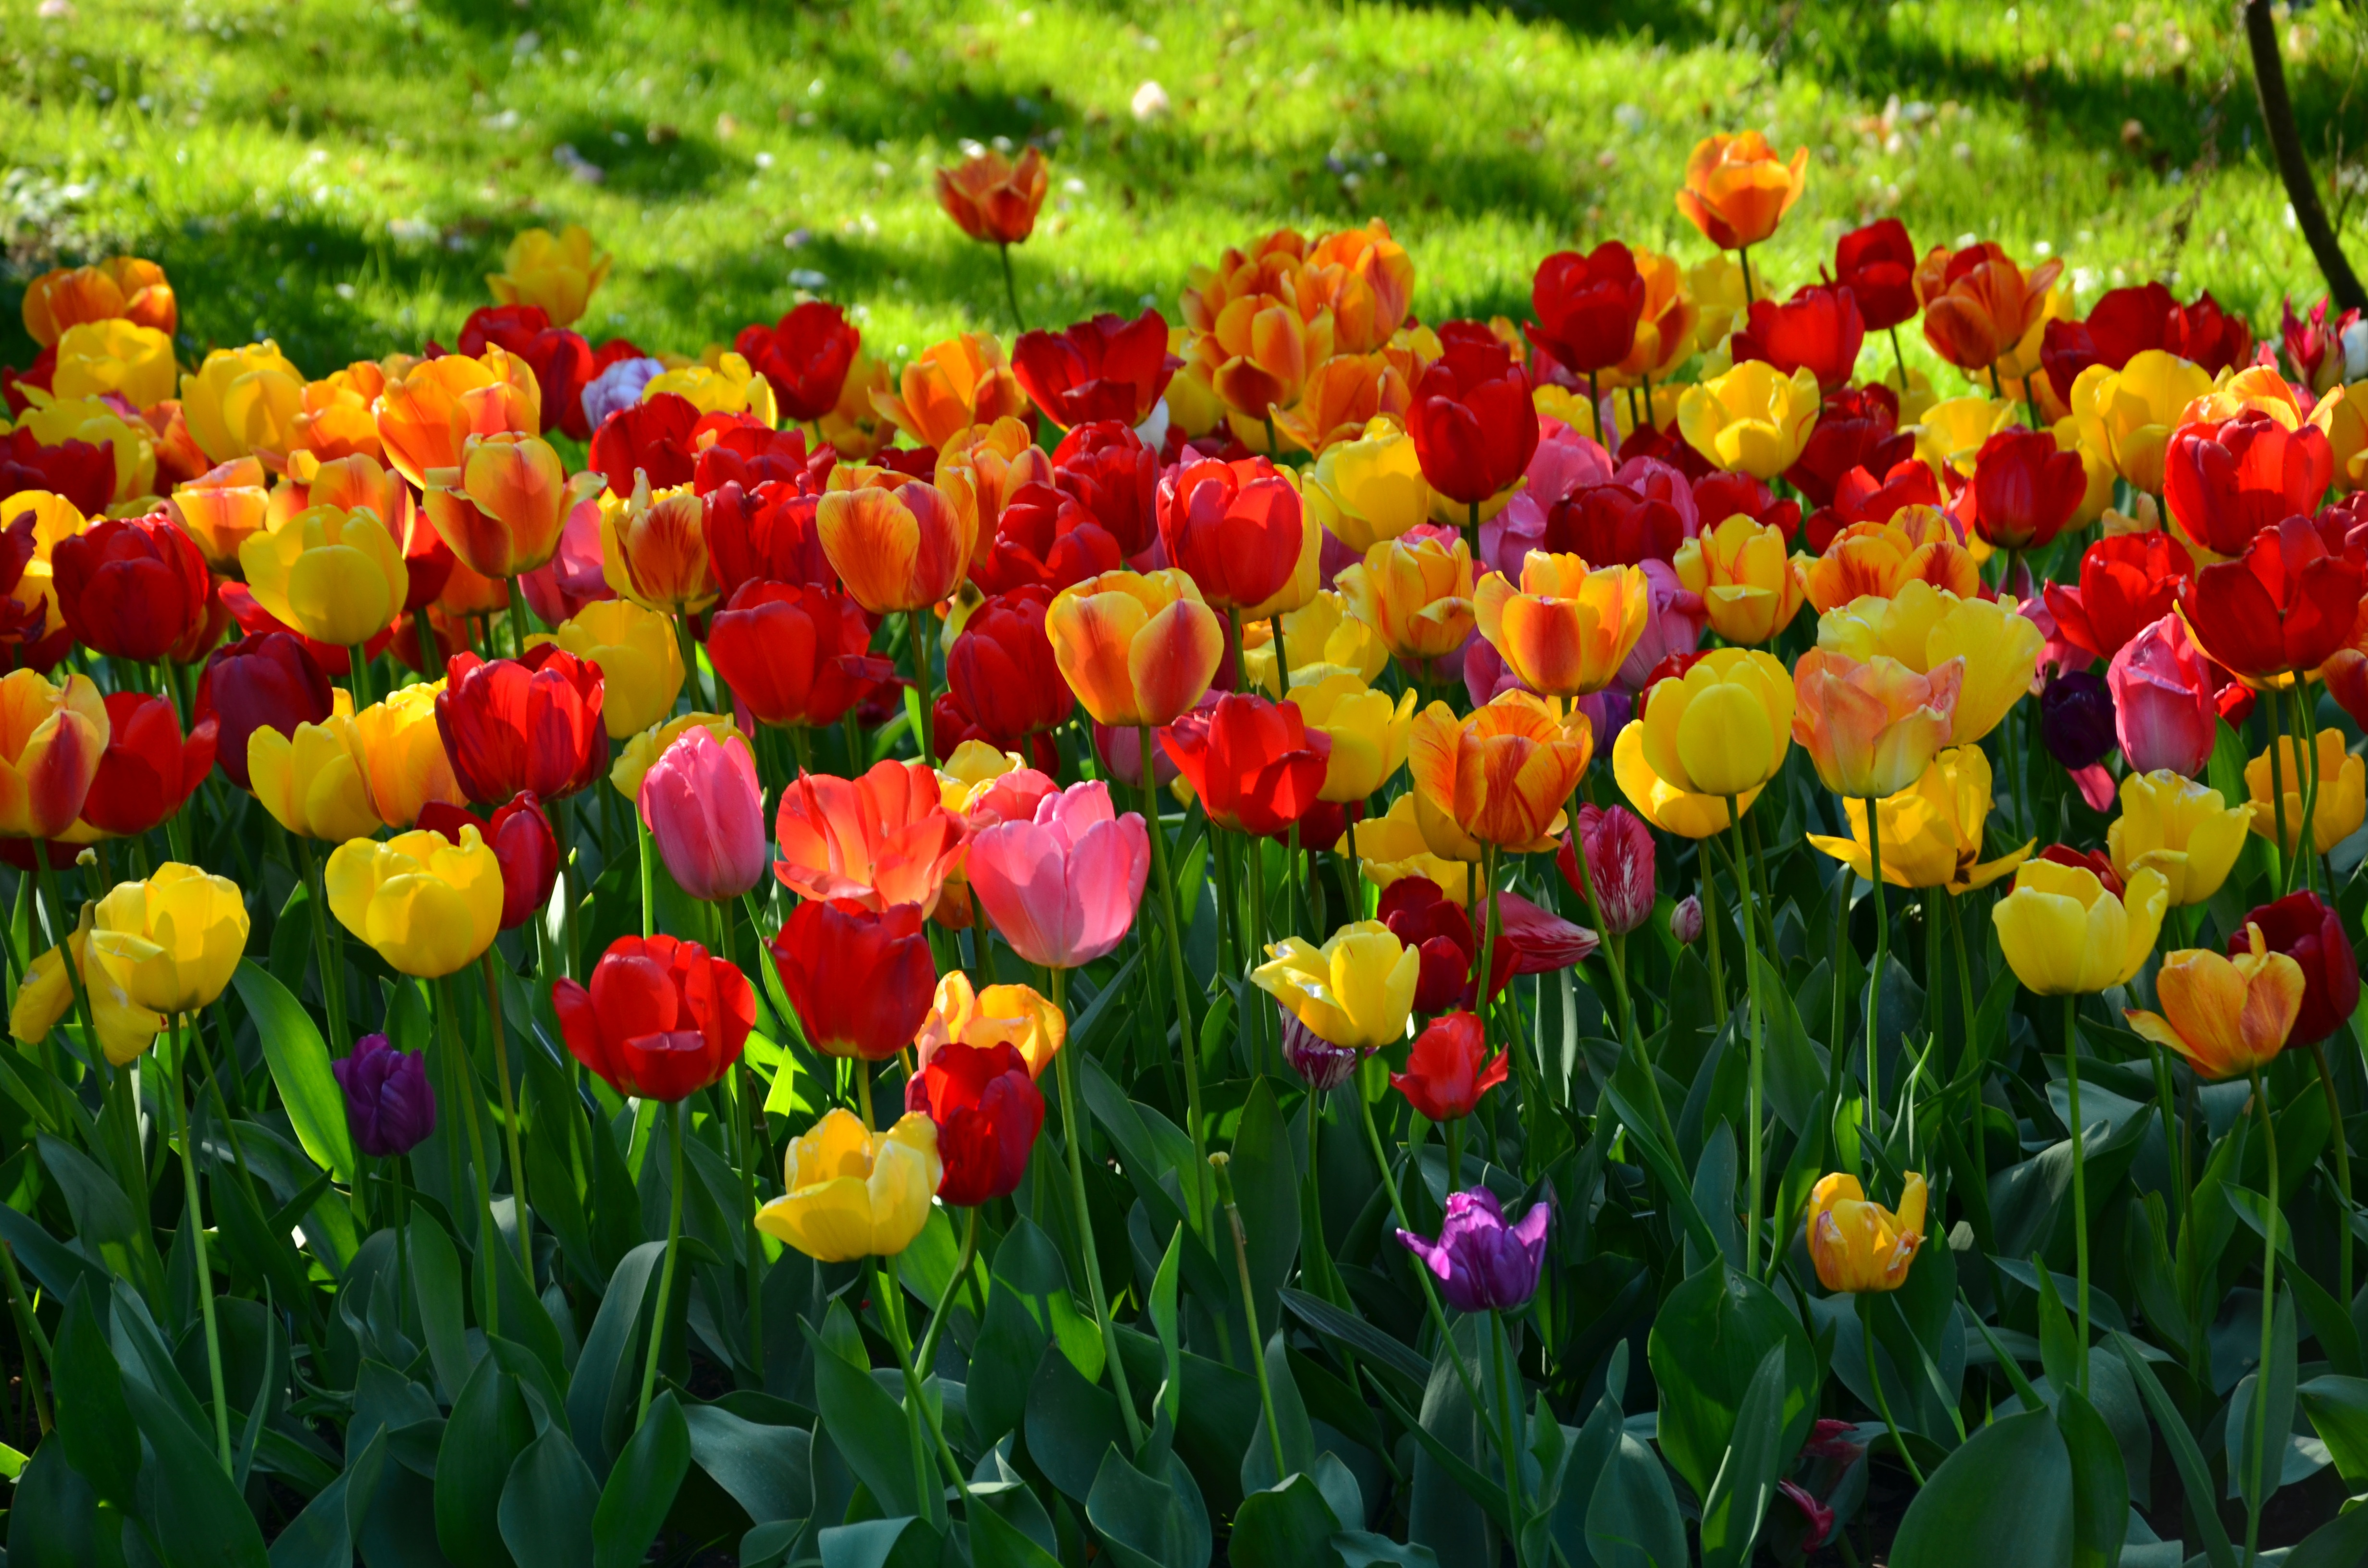 Blooming Tulips In Spring 4k Ultra Hd Wallpaper Background Image 4928x3264